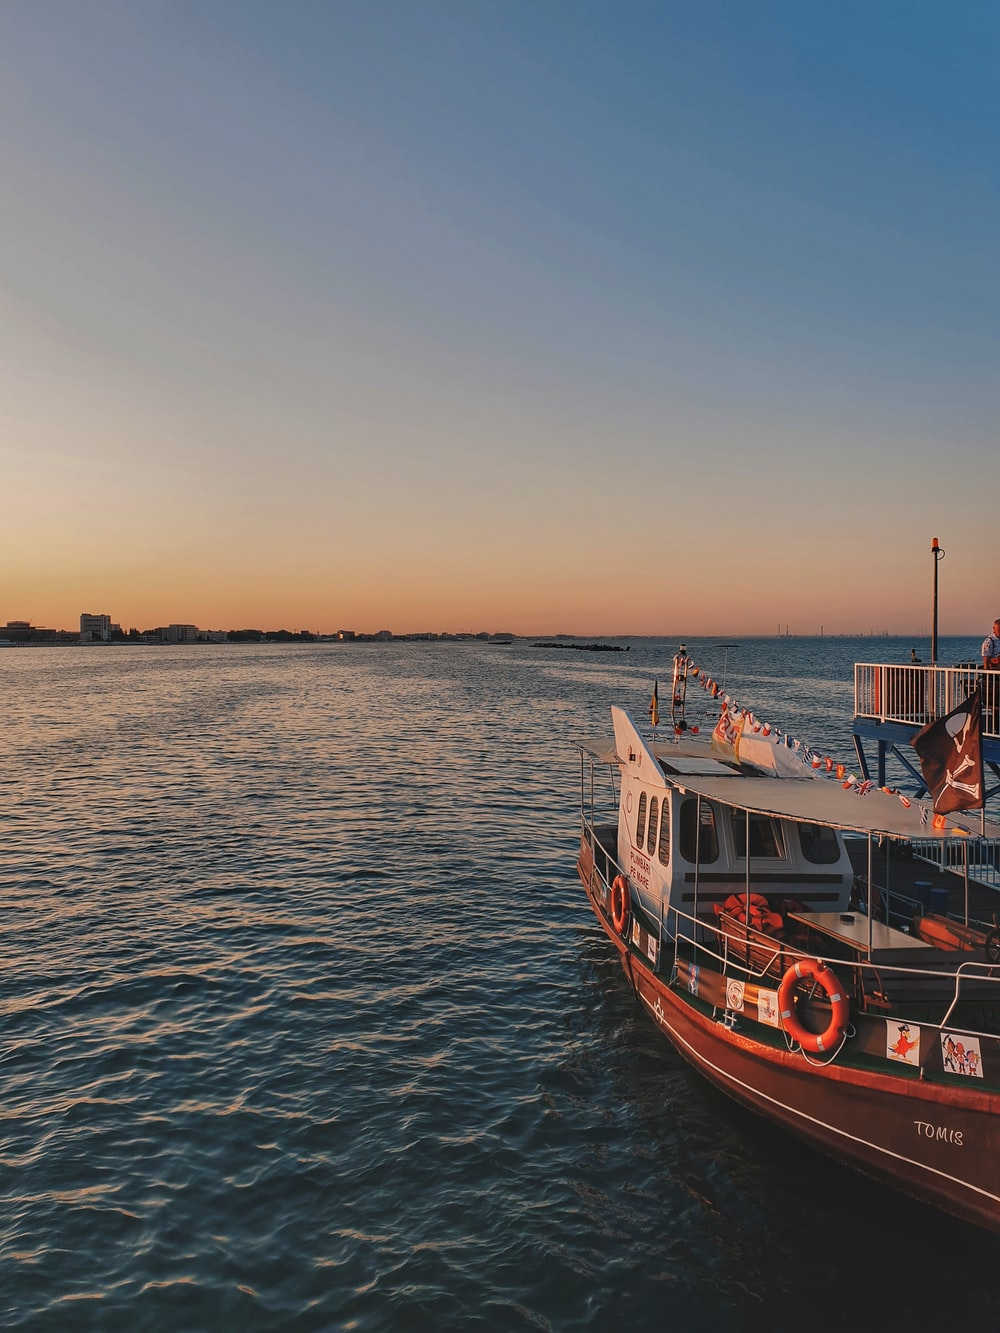 red and white boat on body of water at golden hour